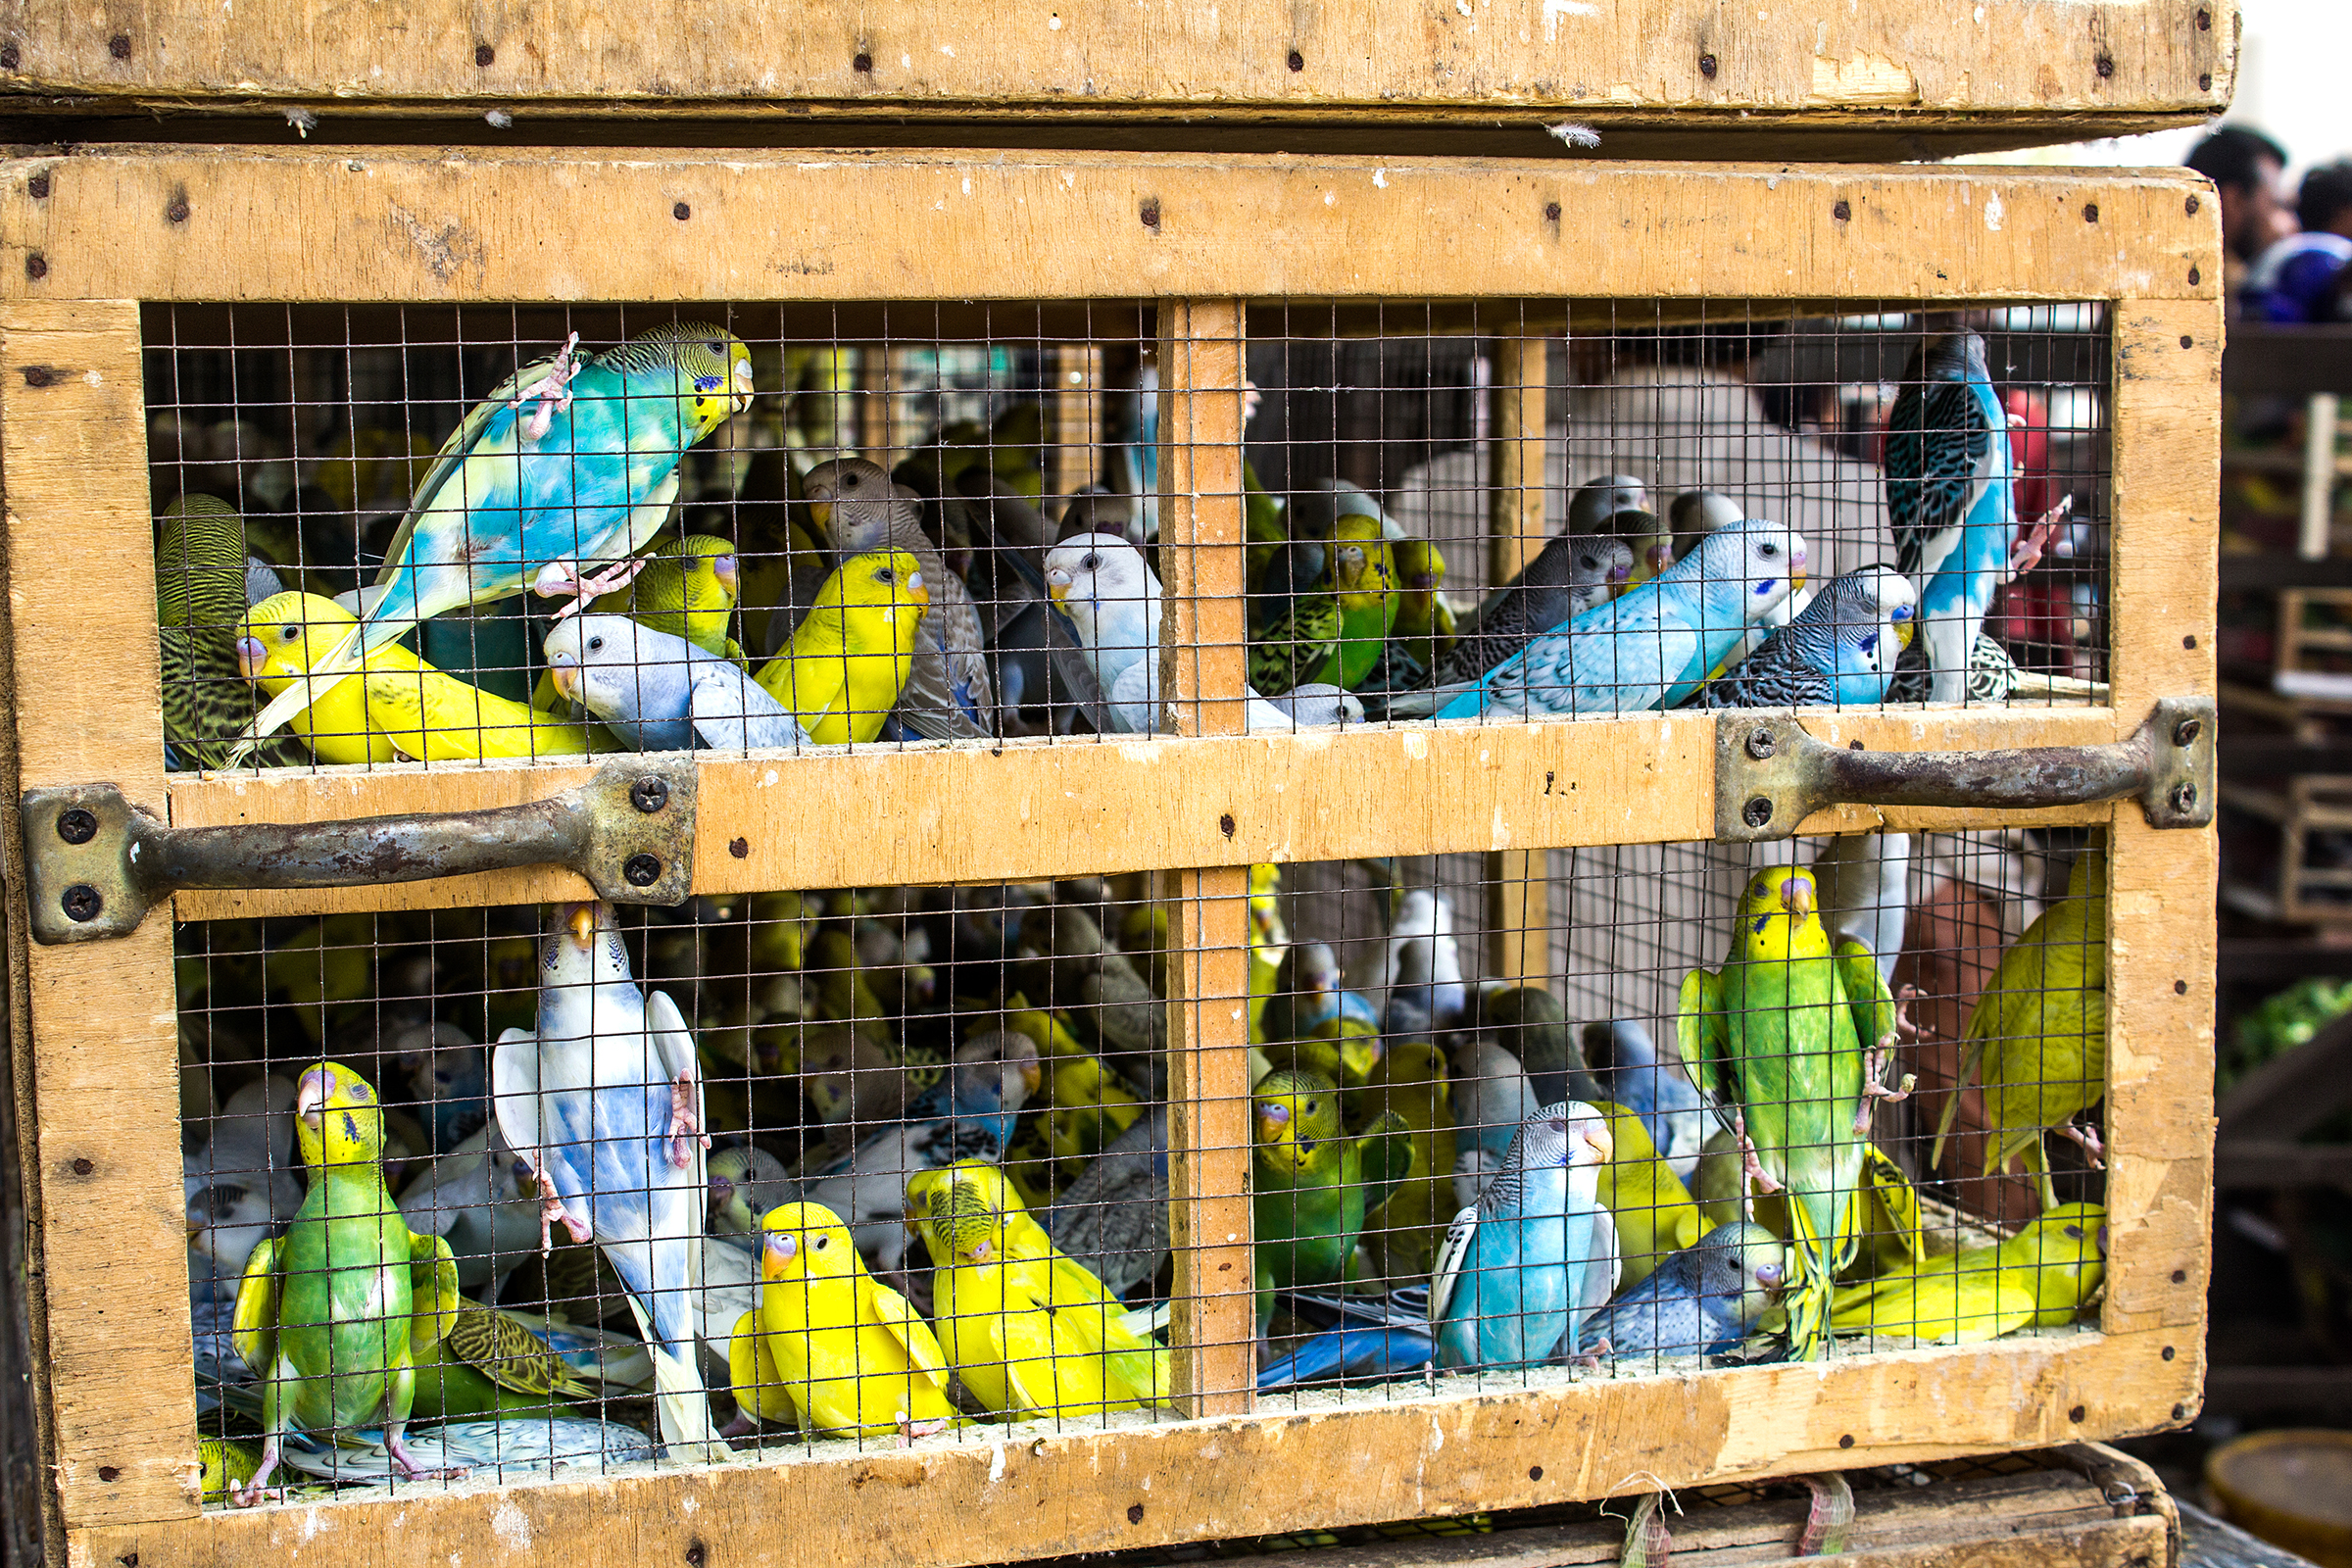 An overpacked cage of birds being sold at a live animal market. Photograph by Faraz Hyder Jafri